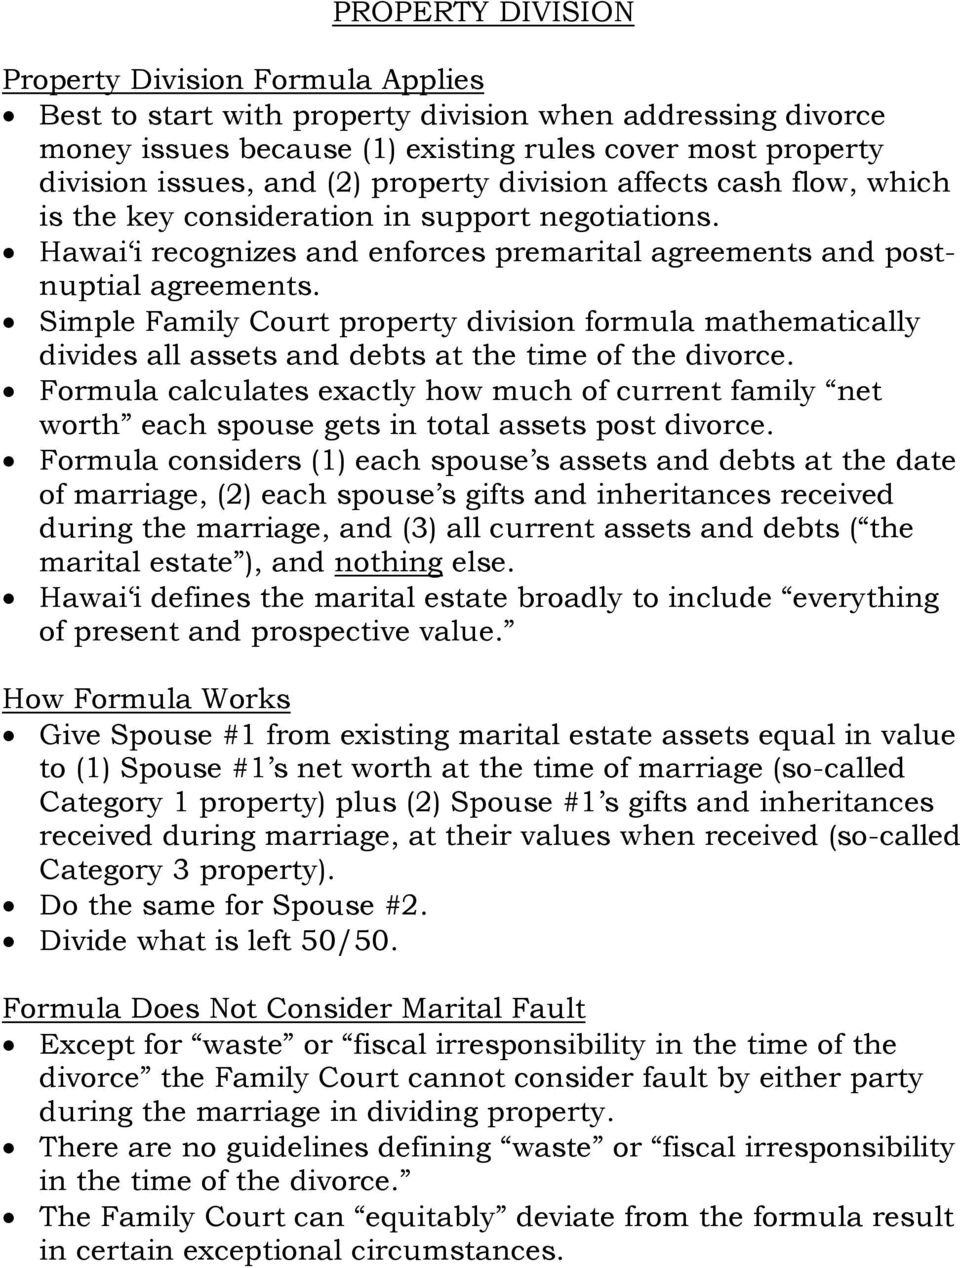 Simple Family Court property division formula mathematically divides all assets and debts at the time of the divorce.